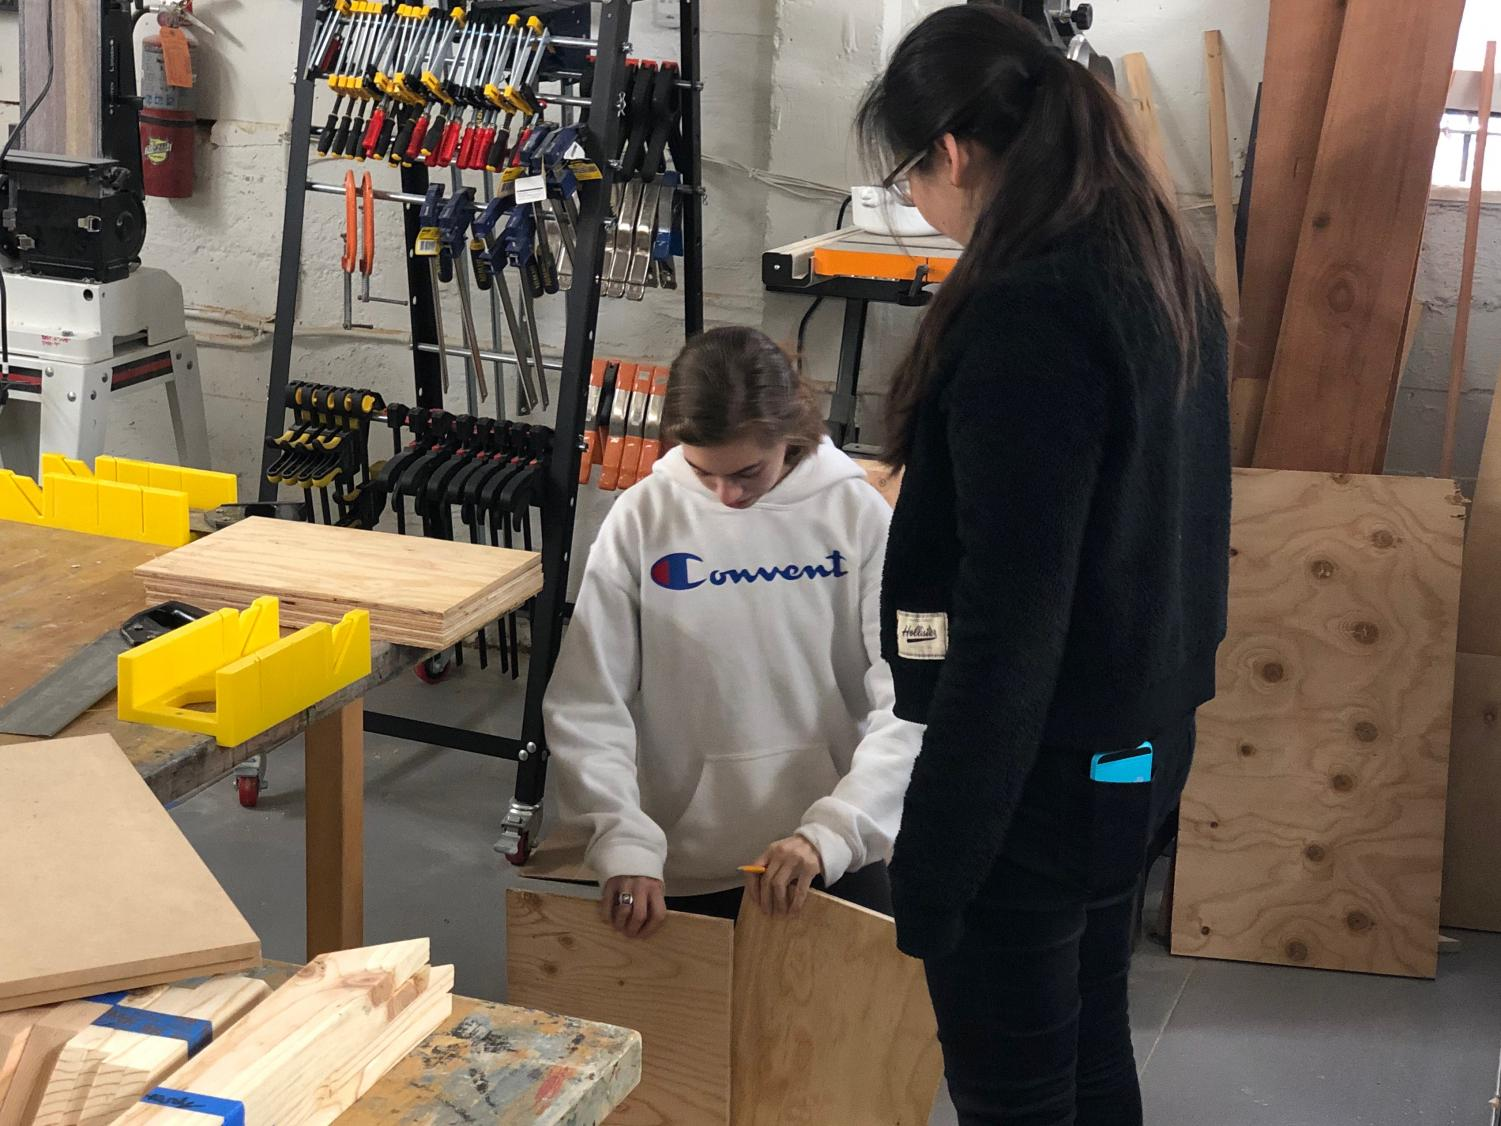 Junior Zoe Hinks and Michelle Wang measure the dimensions of a dollhouse they are creating for their International Baccalaureate Creativity, Activity and Service Project. They have been working on the project since February in the Herbst House wood shop.